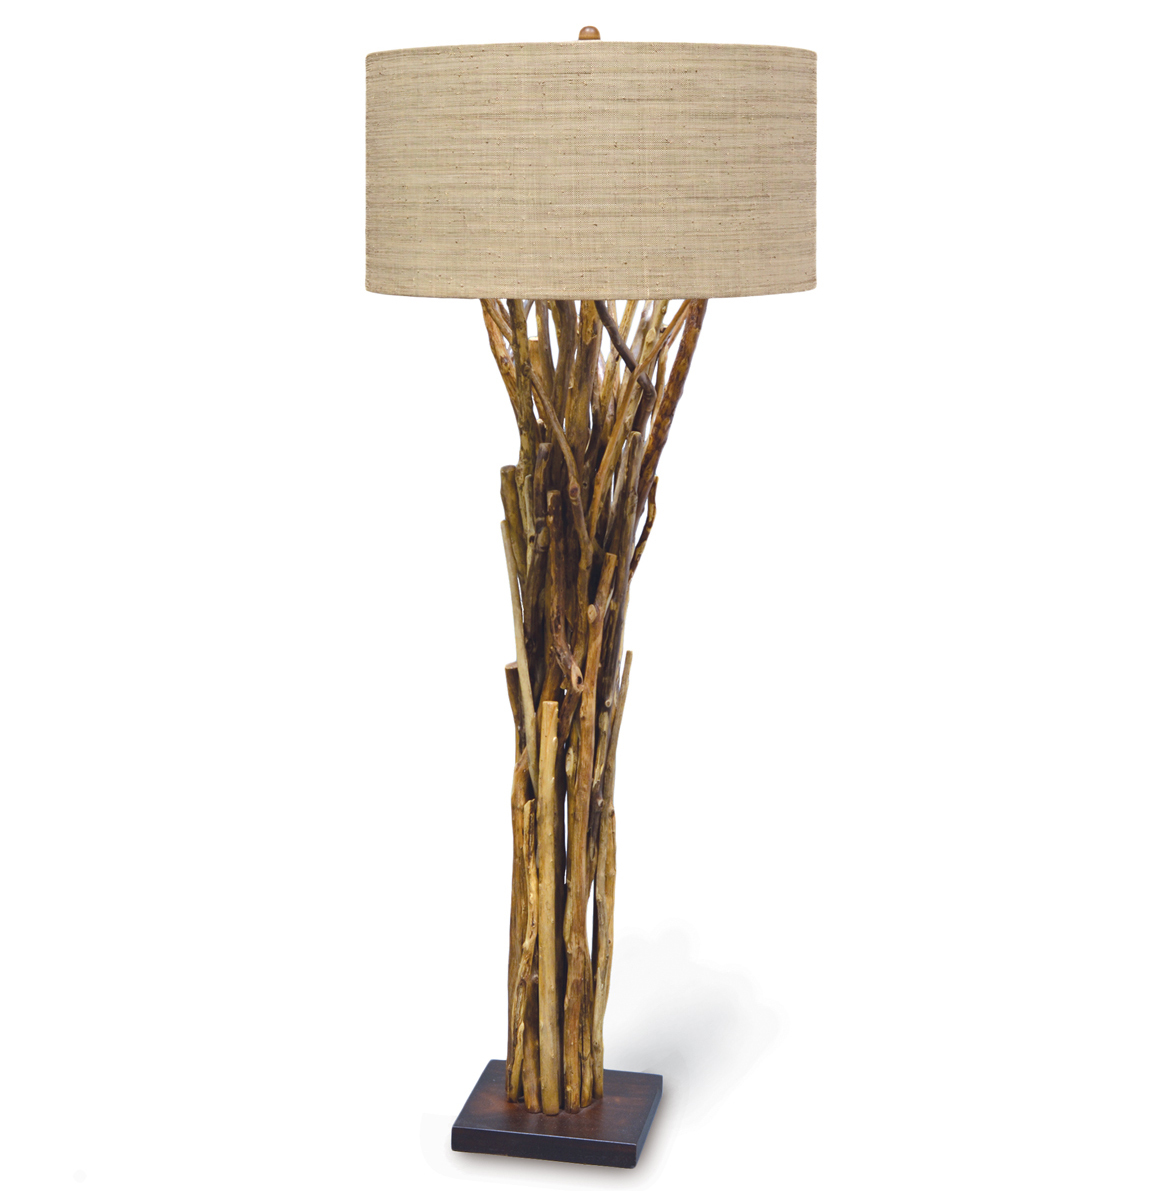 Umber Rustic Lodge Bundled Branches Floor Lamp - 30 Inch Shade